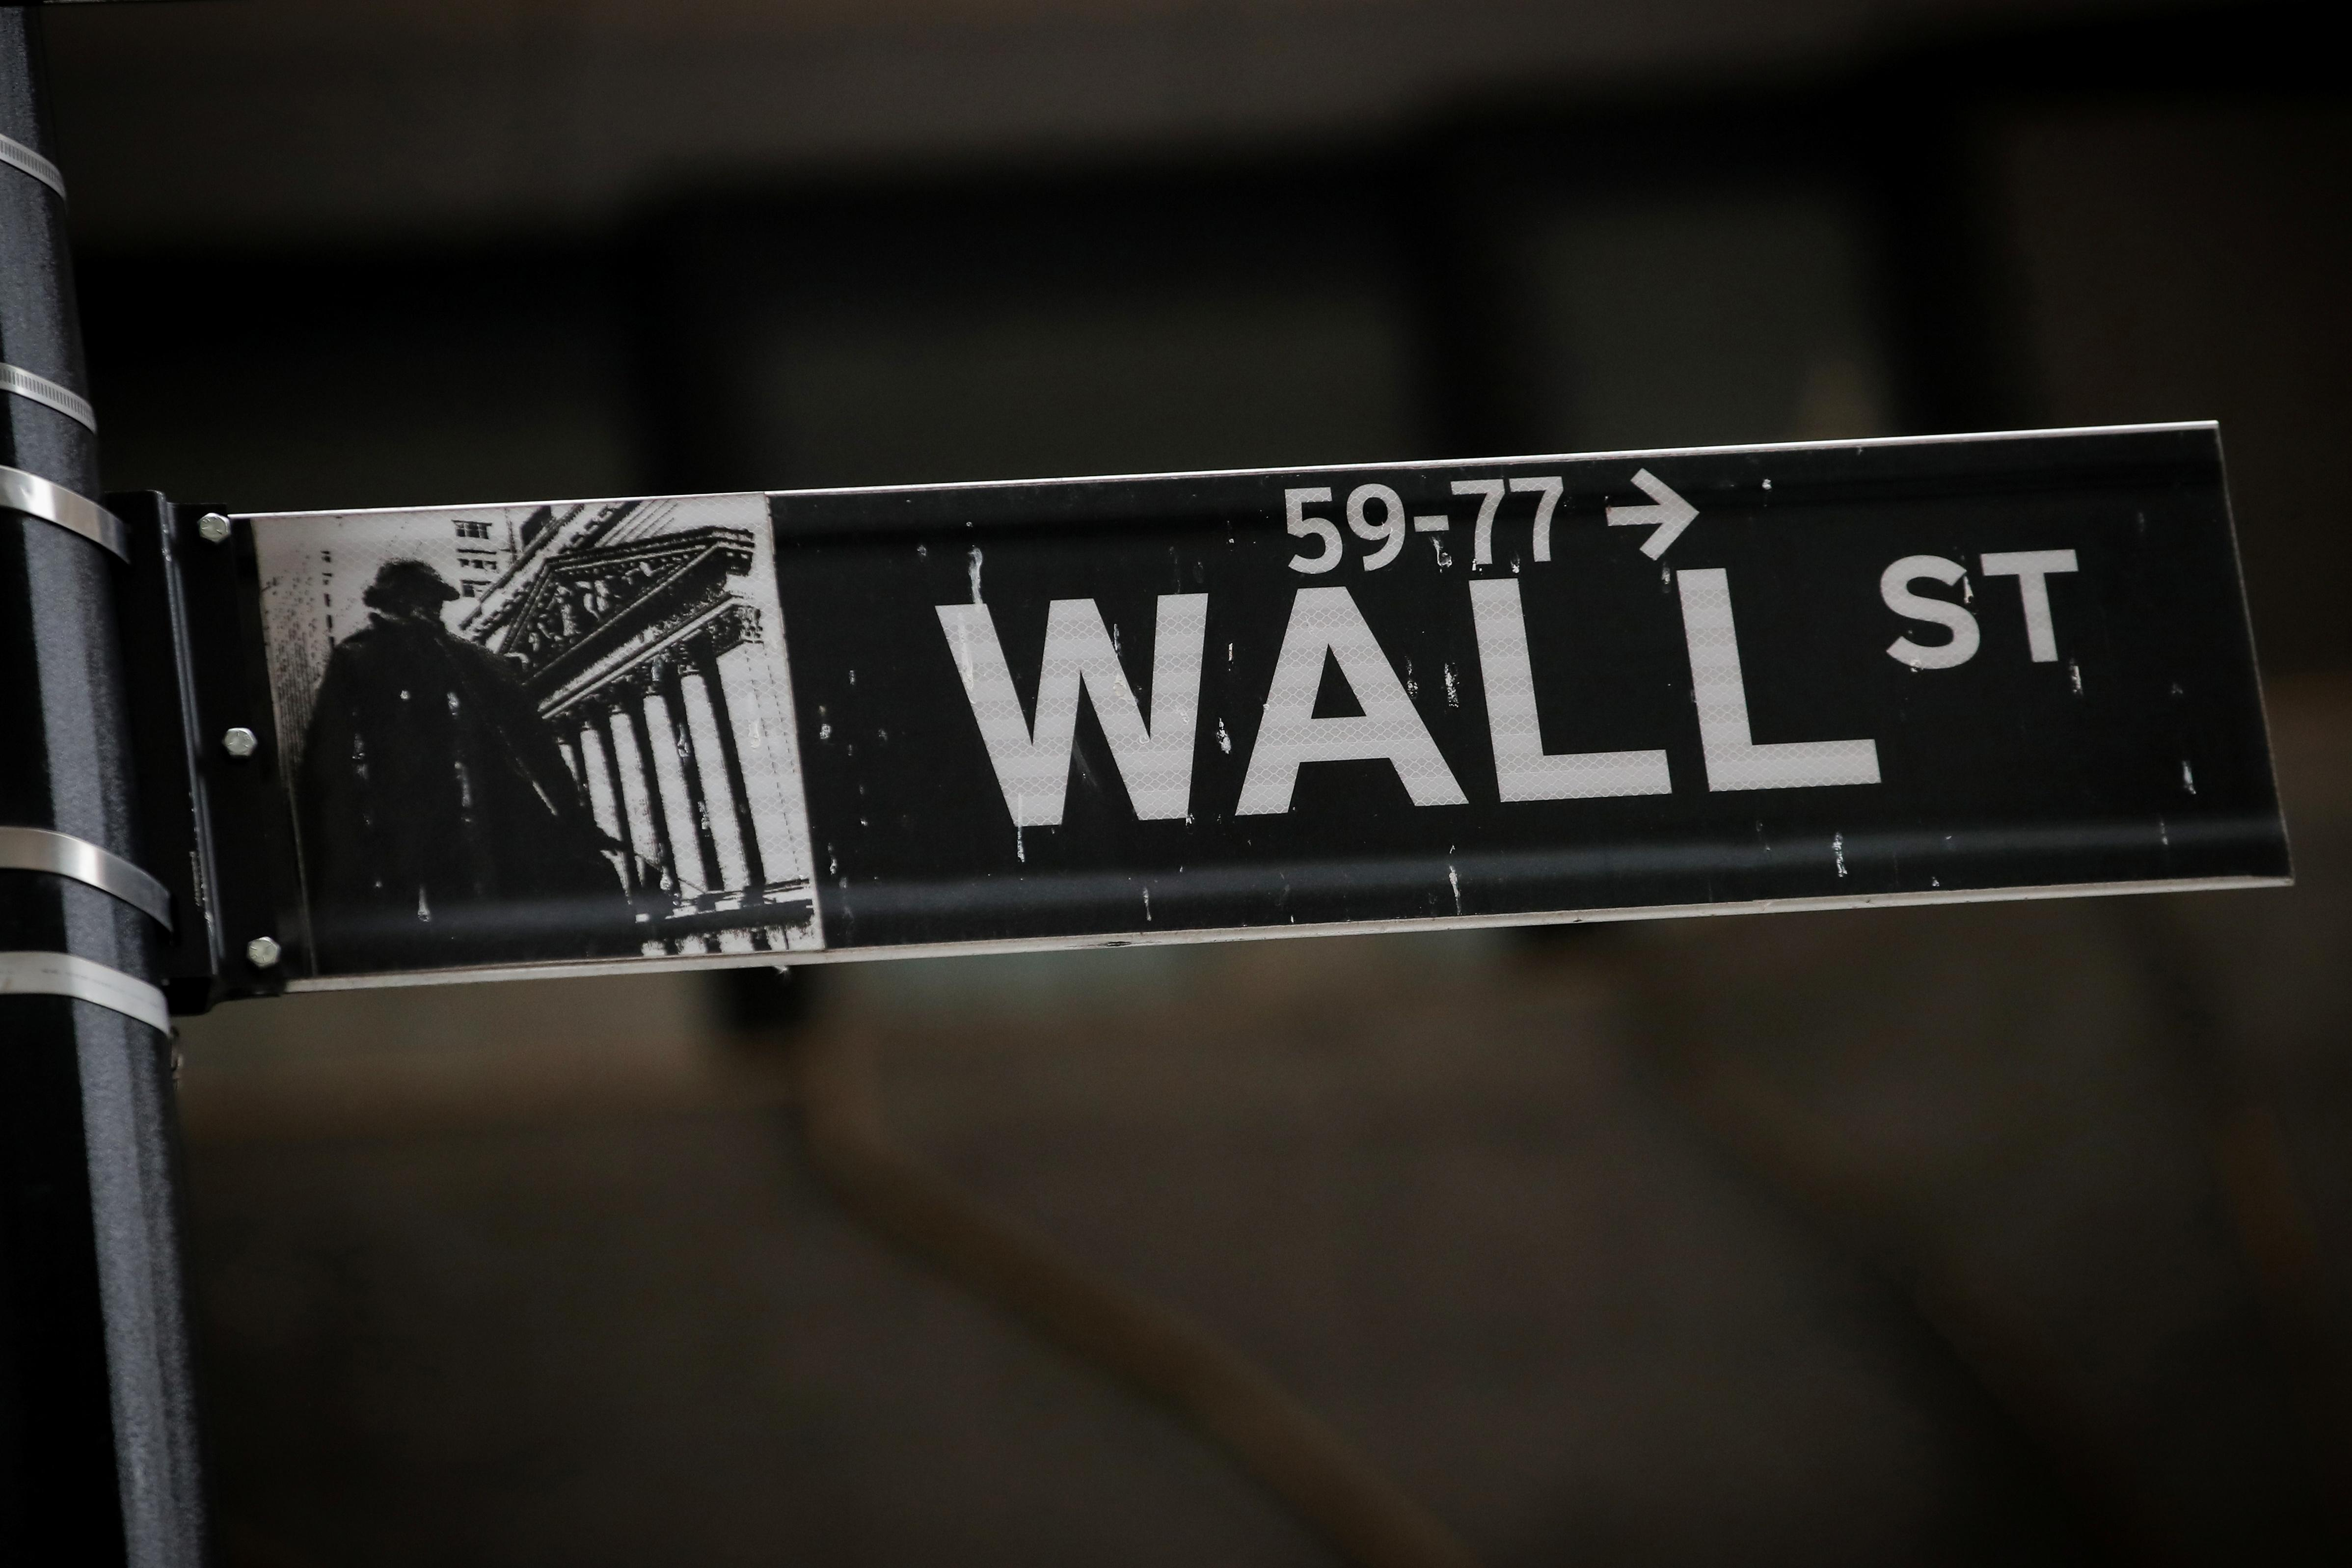 Wall Street finds blockchain hard to tame after early euphoria